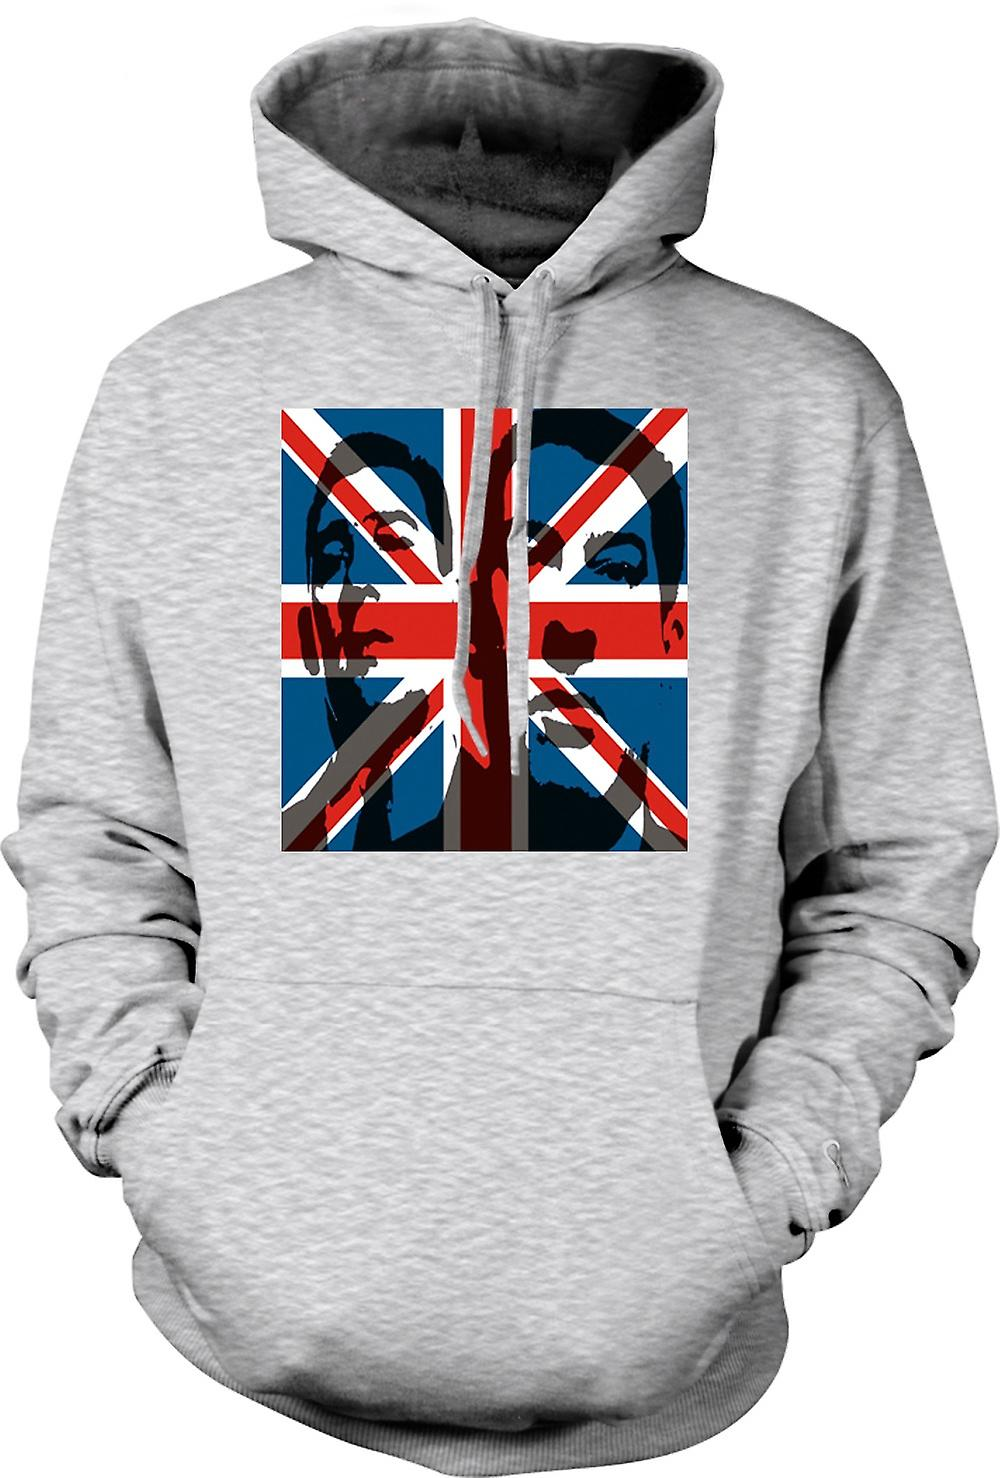 Mens Hoodie - L'Union Jack Krays - Gangster